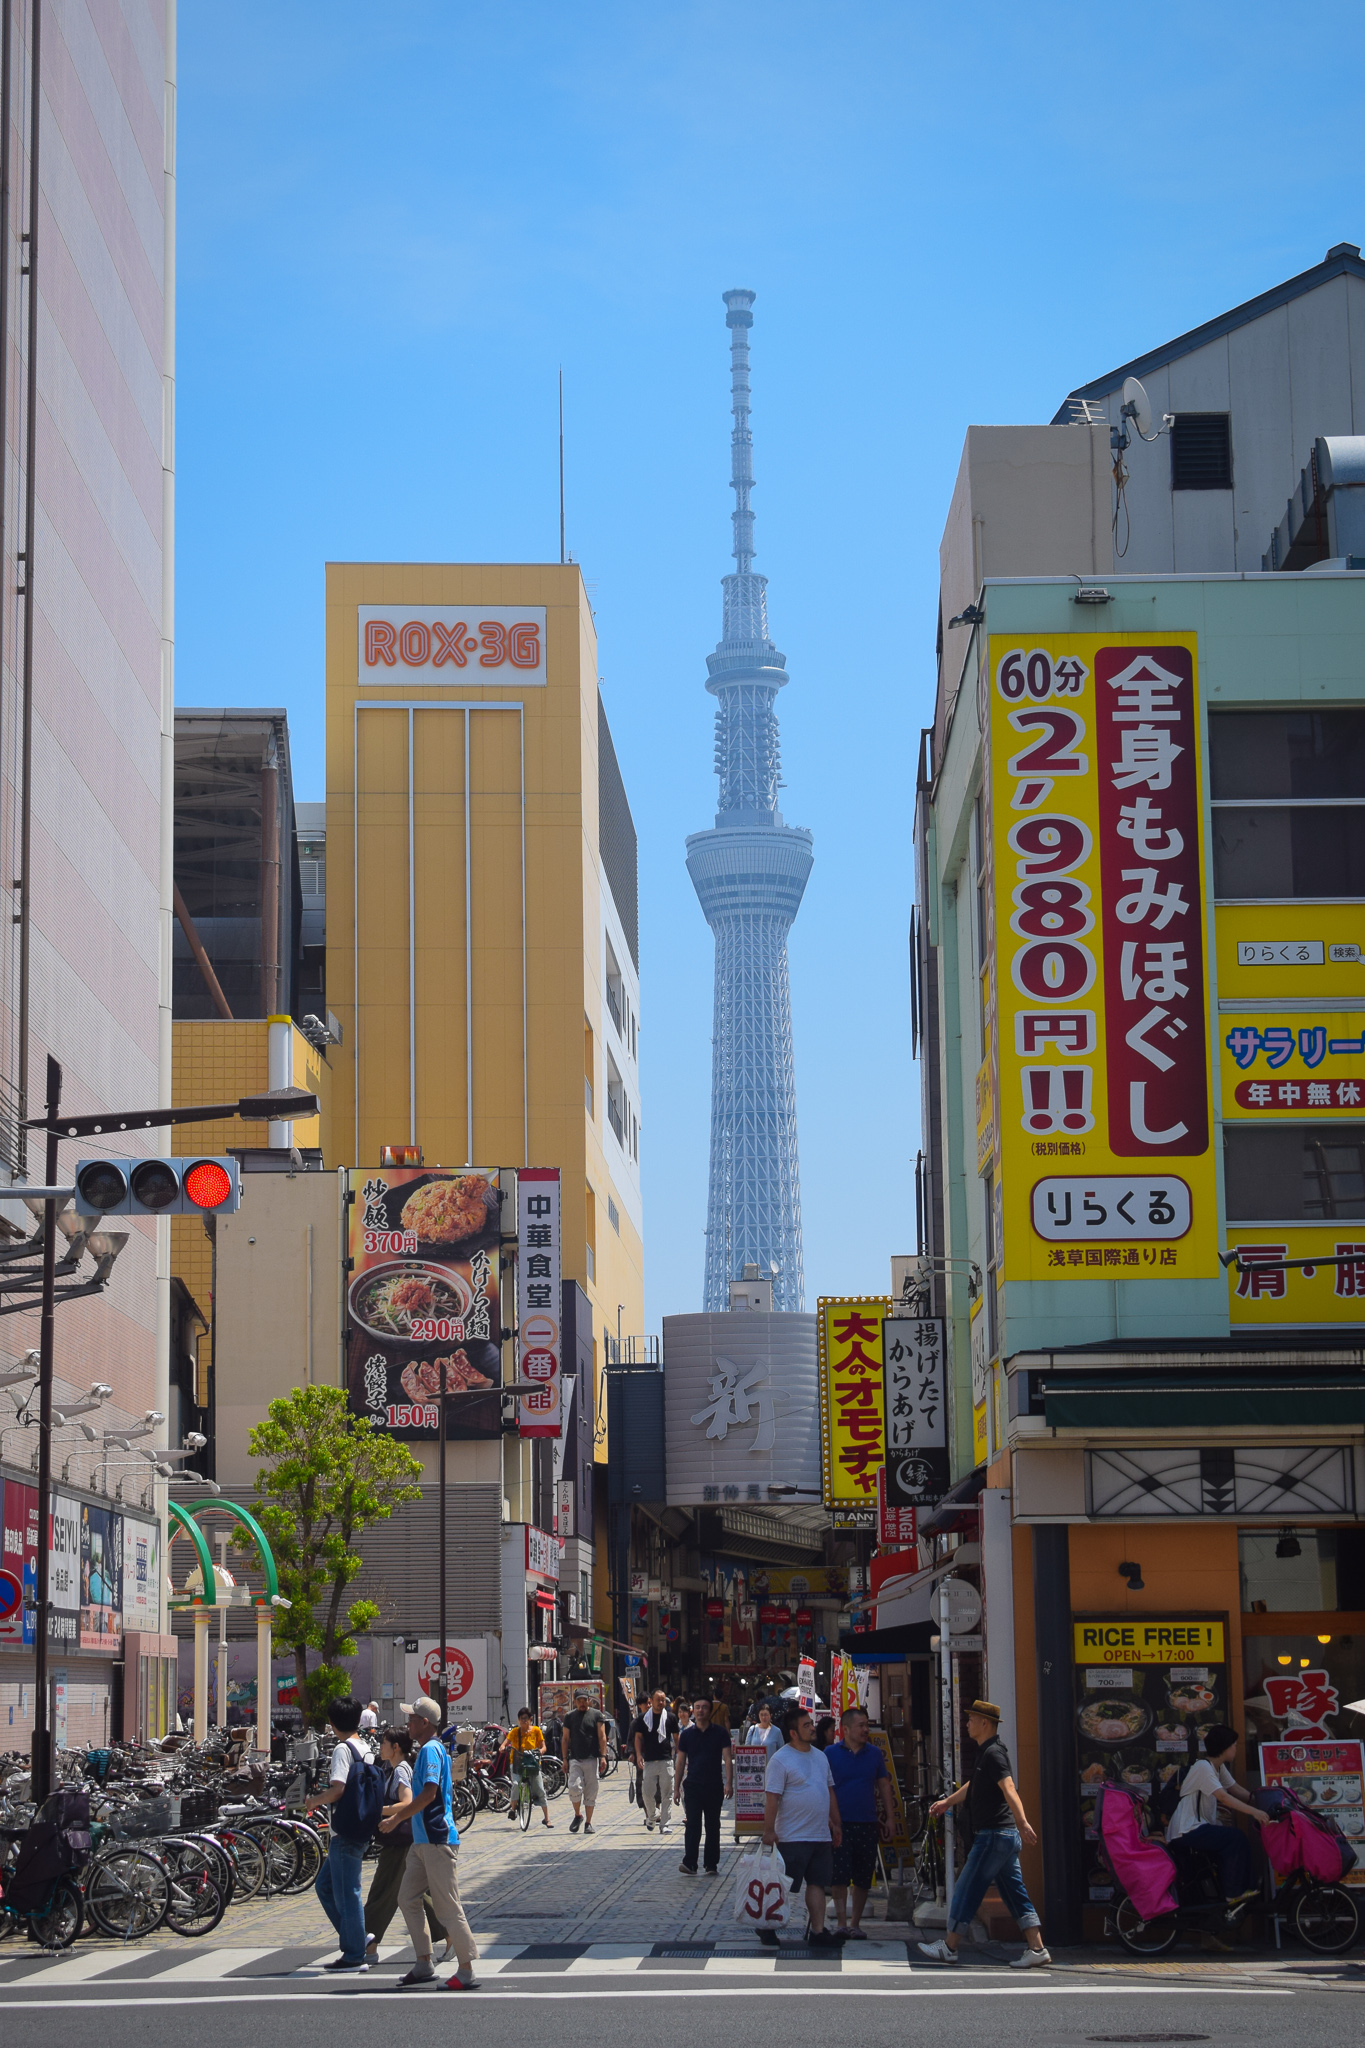 As it stands (pun completely intended), Tokyo Tower is the world's second-tallest structure behind the Burj Khalifa.